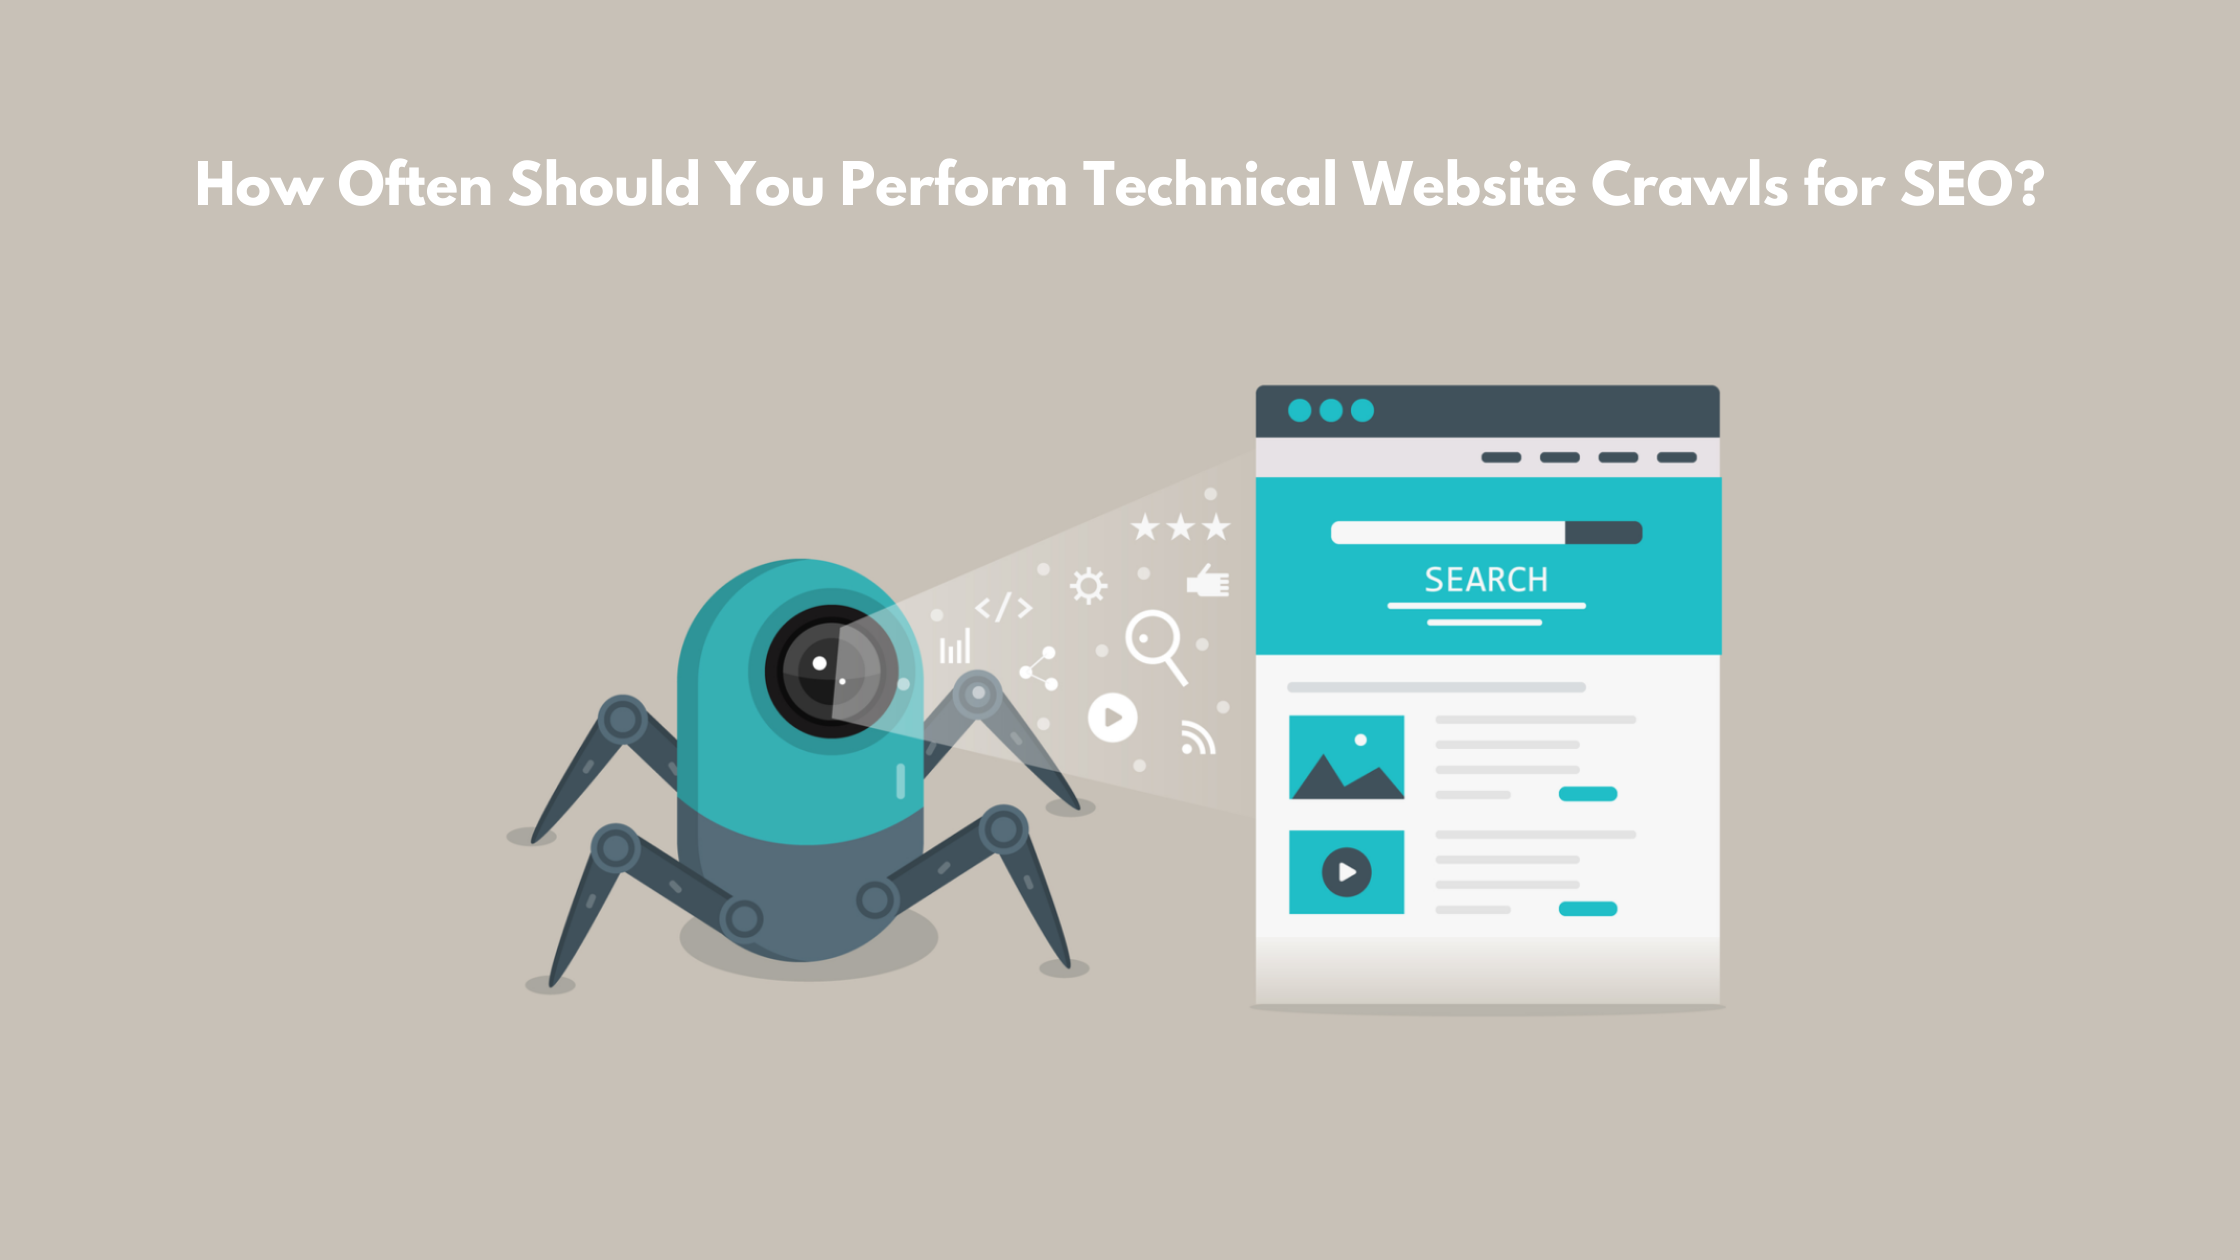 How Often Should You Perform Technical Website Crawls for SEO?